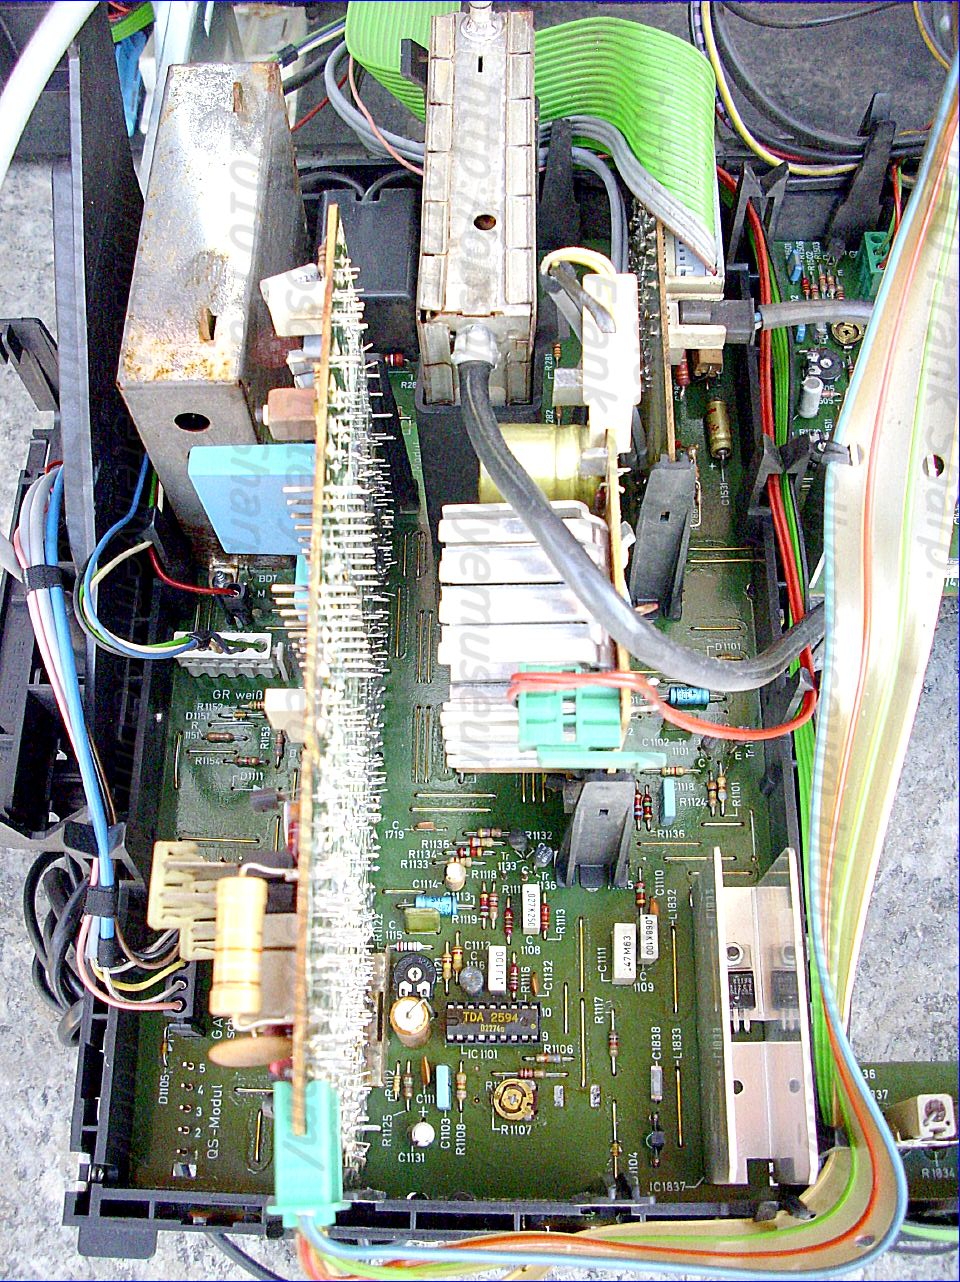 Obsolete Technology Tellye Metz 7285 Mallorca Color Chassis 681g Input And Output Coupling Bipolar Junction Transistors Electronics More Precisely The Lowering Voltage At Emitter Of Transistor 43 Raises A Threshold In Automatic Chroma Control Detector 33 So That